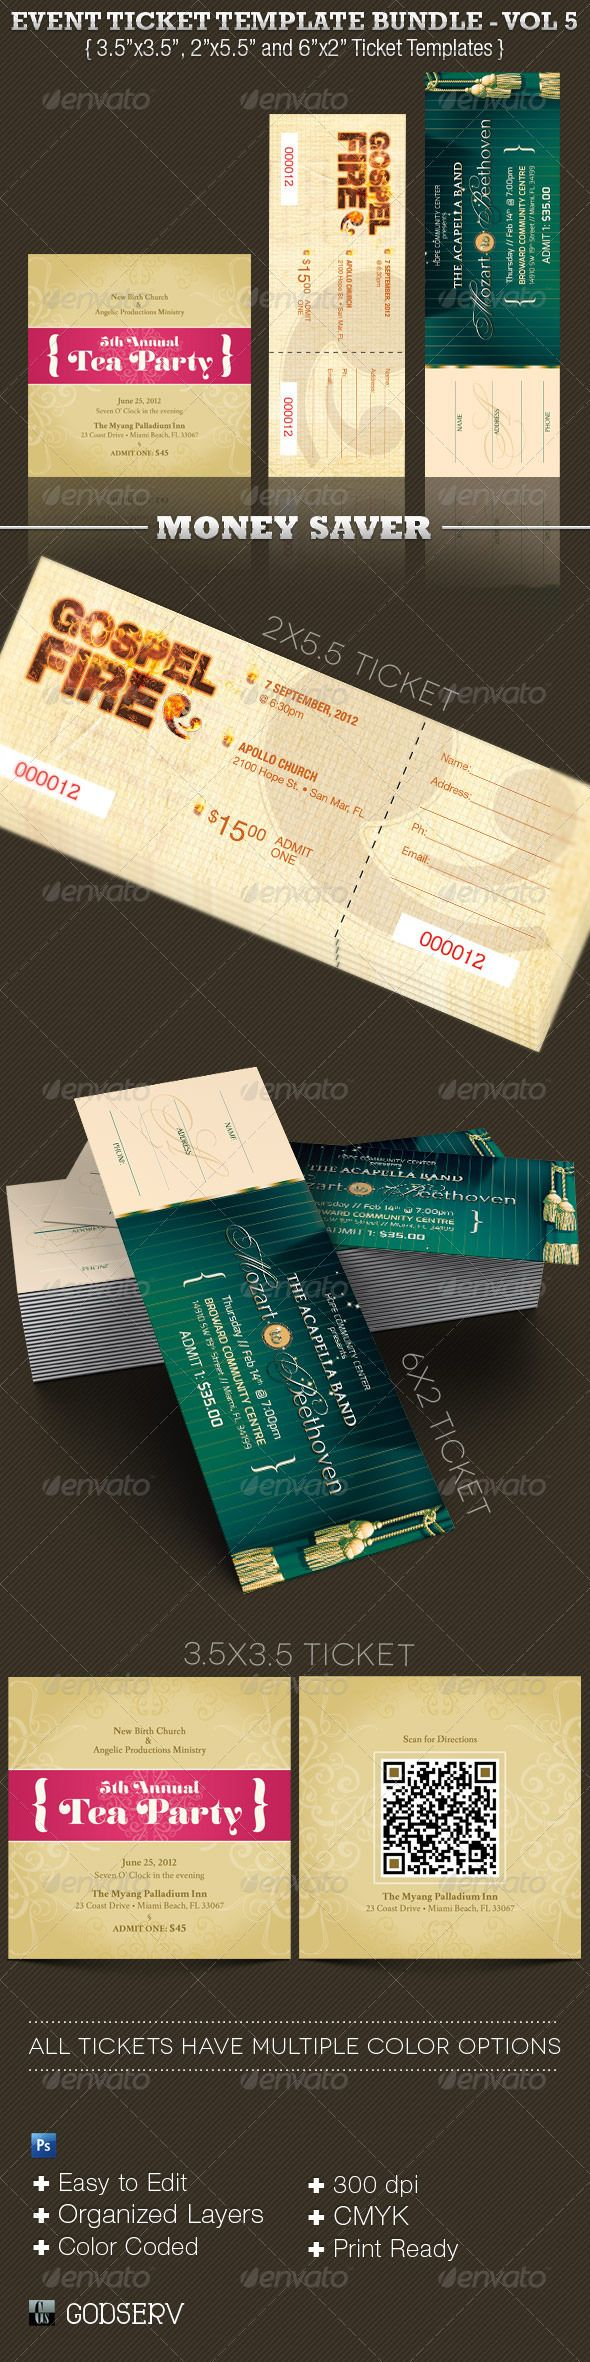 best images about ticket designs basketball baby event ticket template bundle vol 5